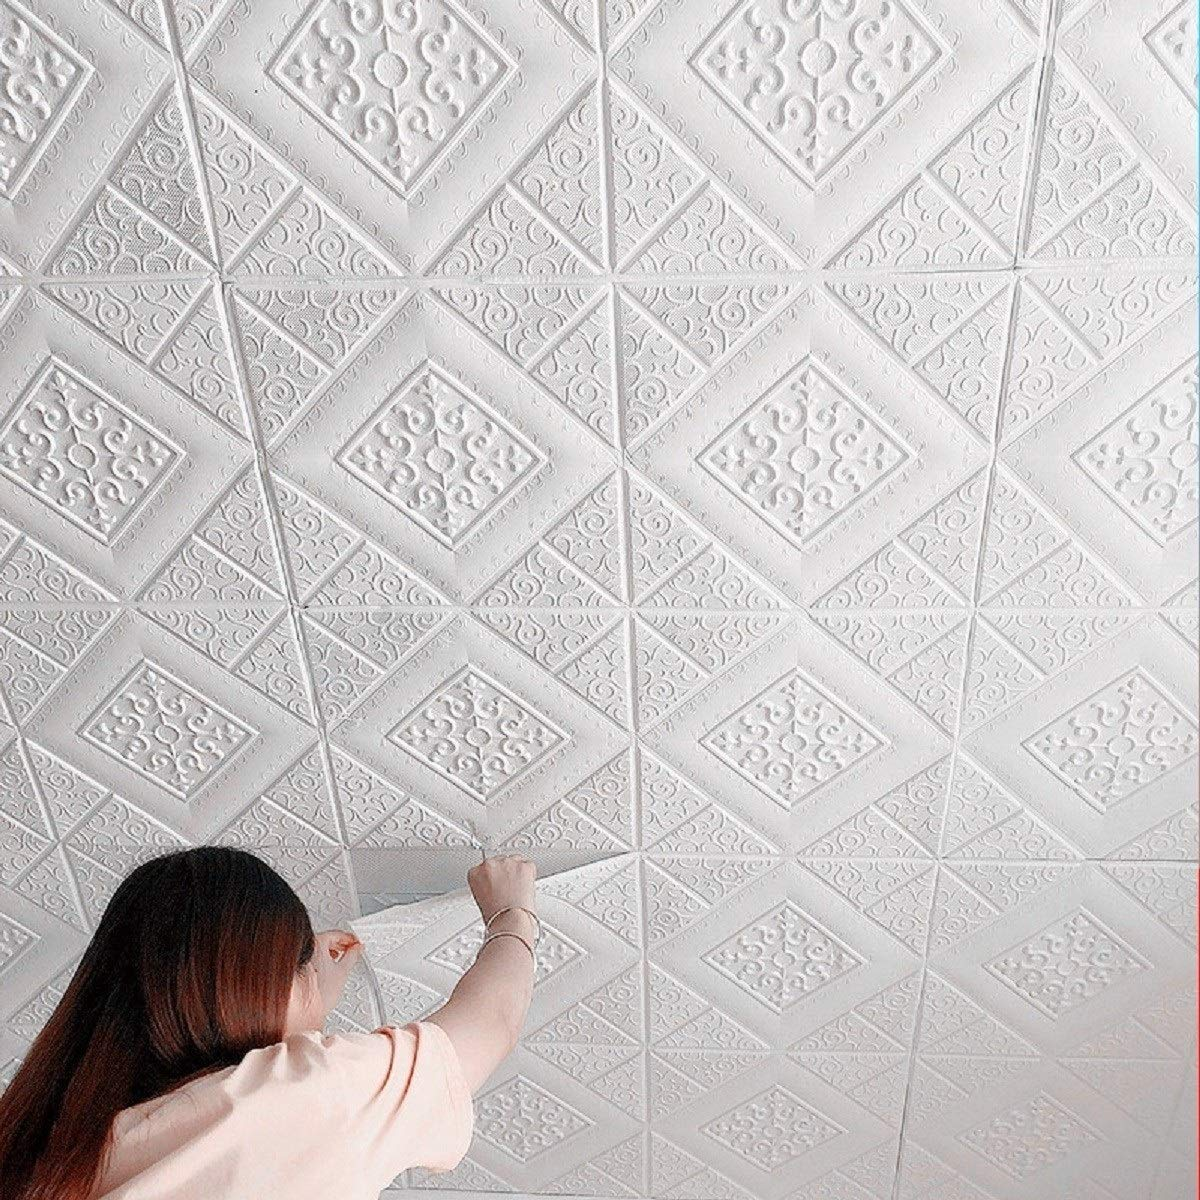 Buy Nasmodo 3d Ceiling Tiles Panel Vinyl Wallpaper Stickers Waterproof Foam Self Adhesive Wall Stickers For Home Living Room Bedroom Wall Panels Tiles Paper For Decoration 70 70 Cm 4 Diamond Online